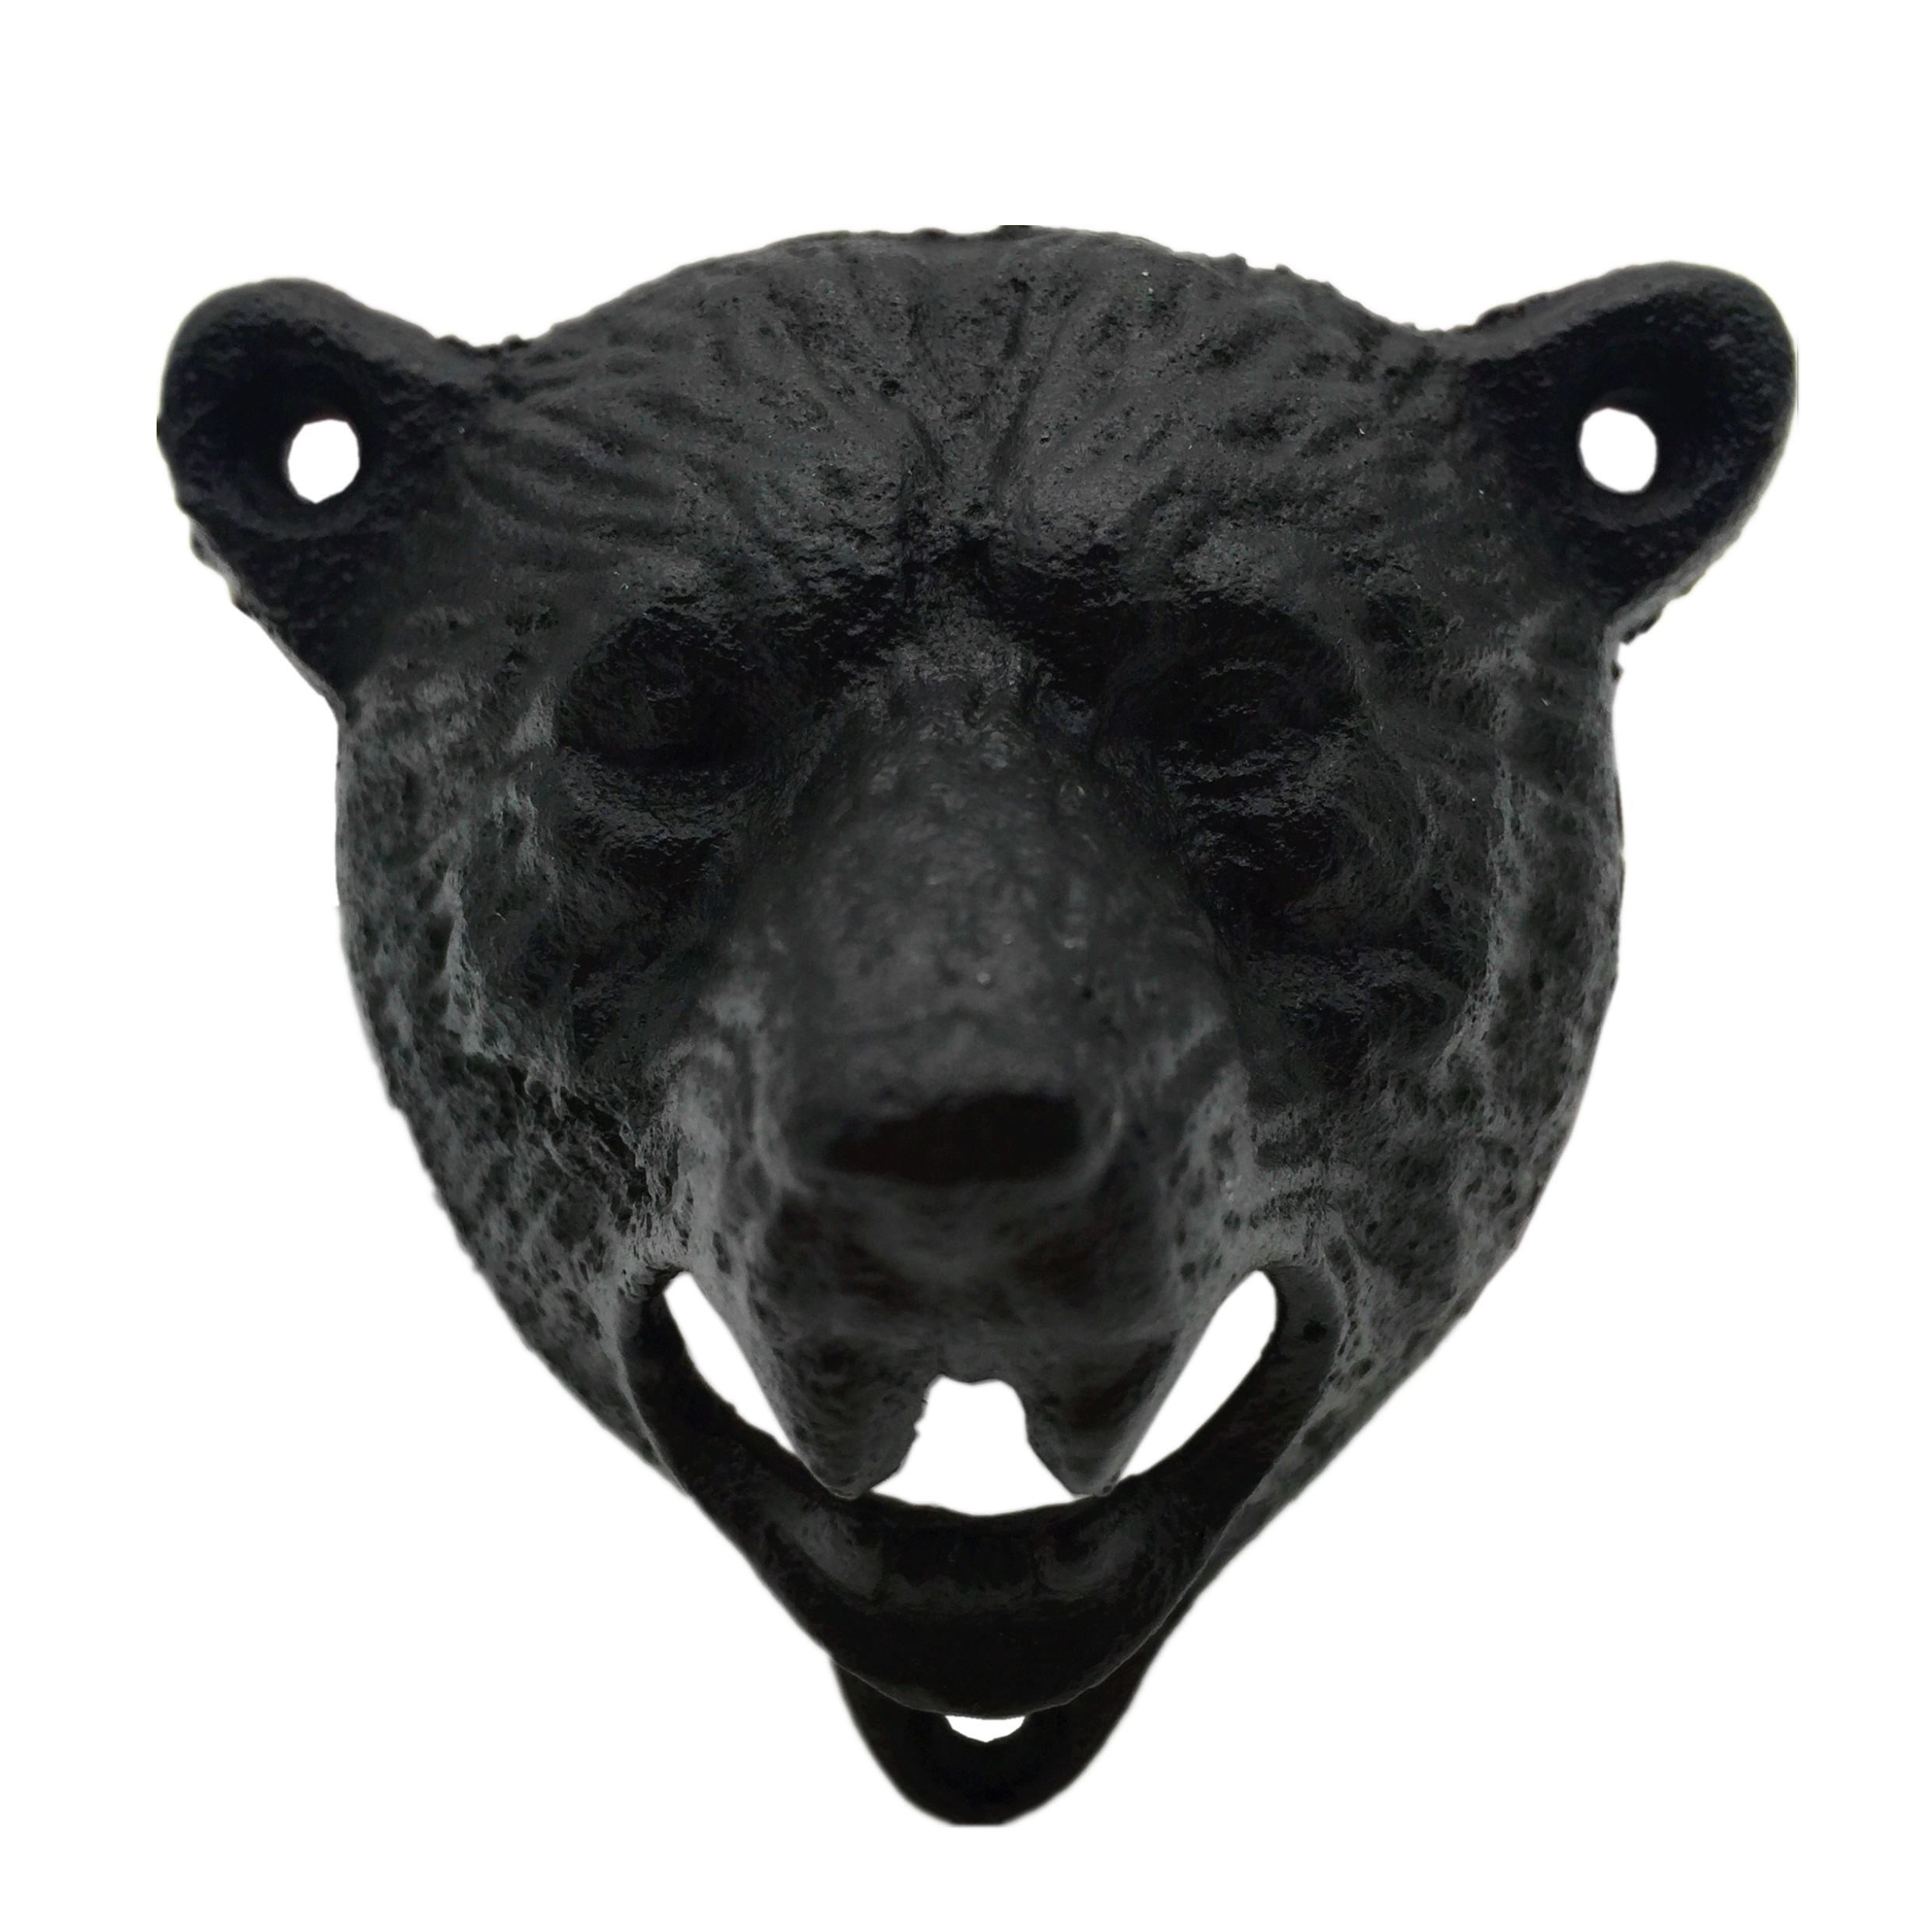 Bear Head Shaped Wall Mounted Bottle Opener Cast Iron Rust Resist Beer Bottle Opener Mounting Screw Included